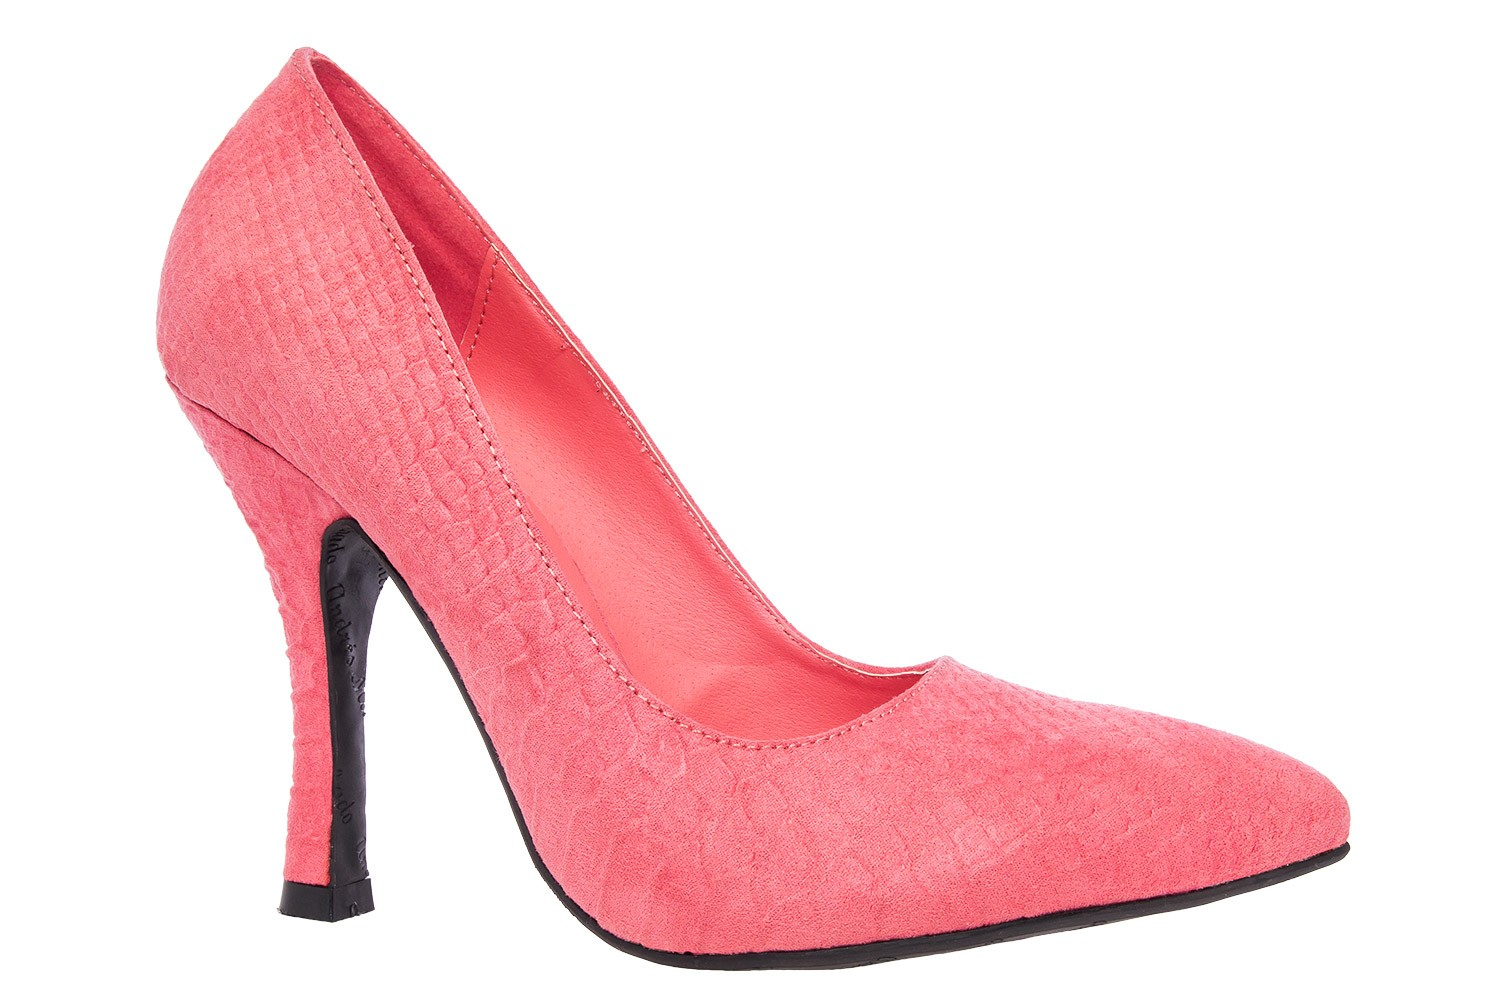 Classic court shoes in small sizes by shoetastic